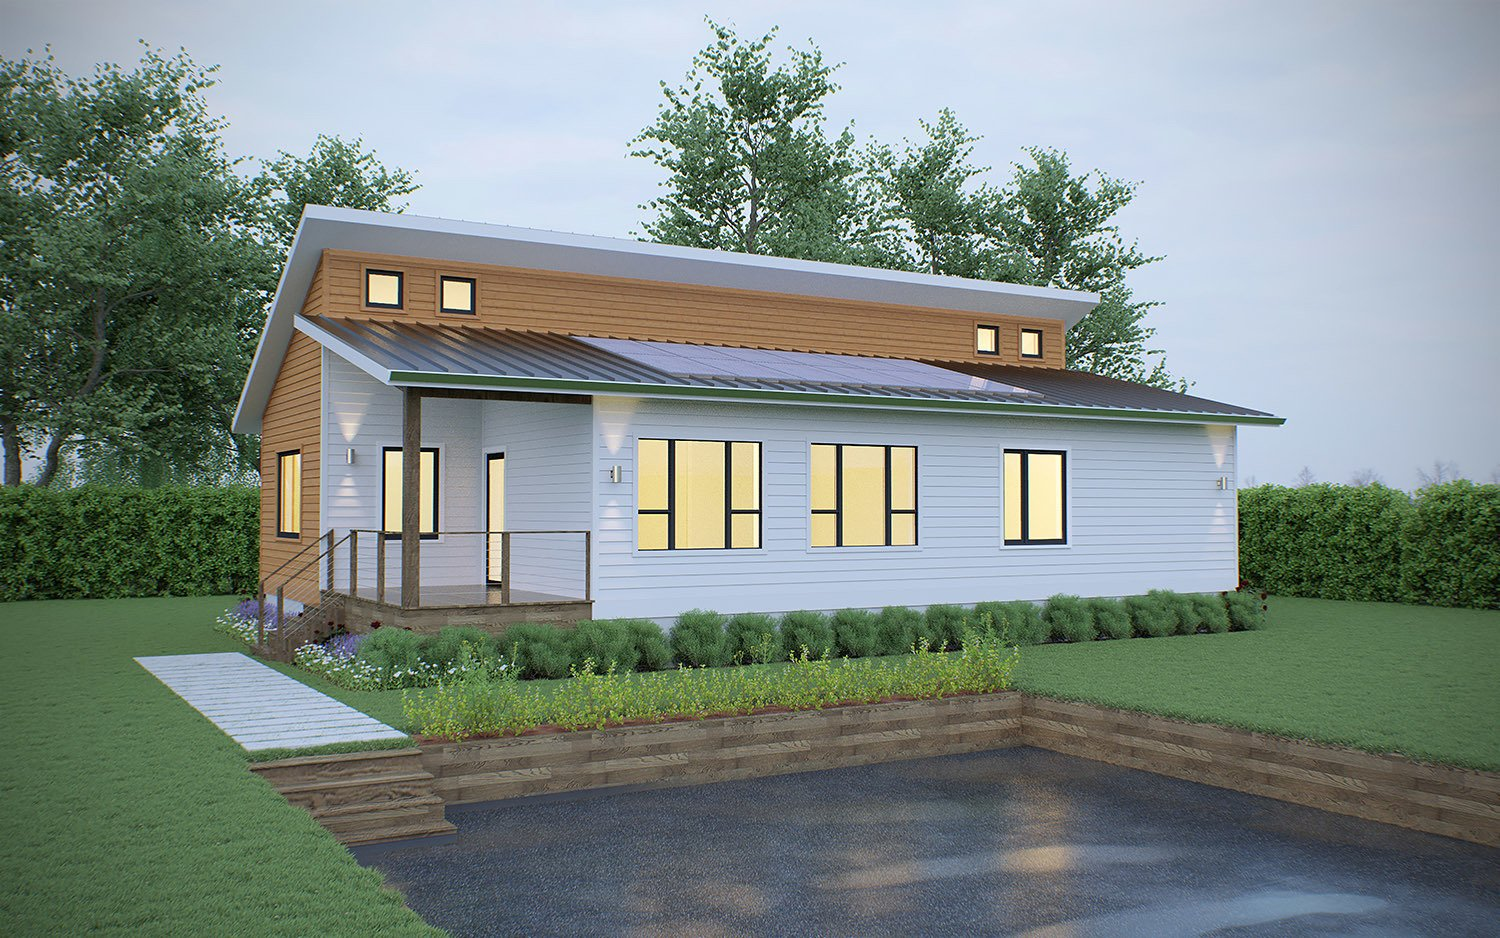 Ridgeline E  Photo 2 of 5 in Deltec Homes Introduces Two New Models, Including Modern Farmhouse